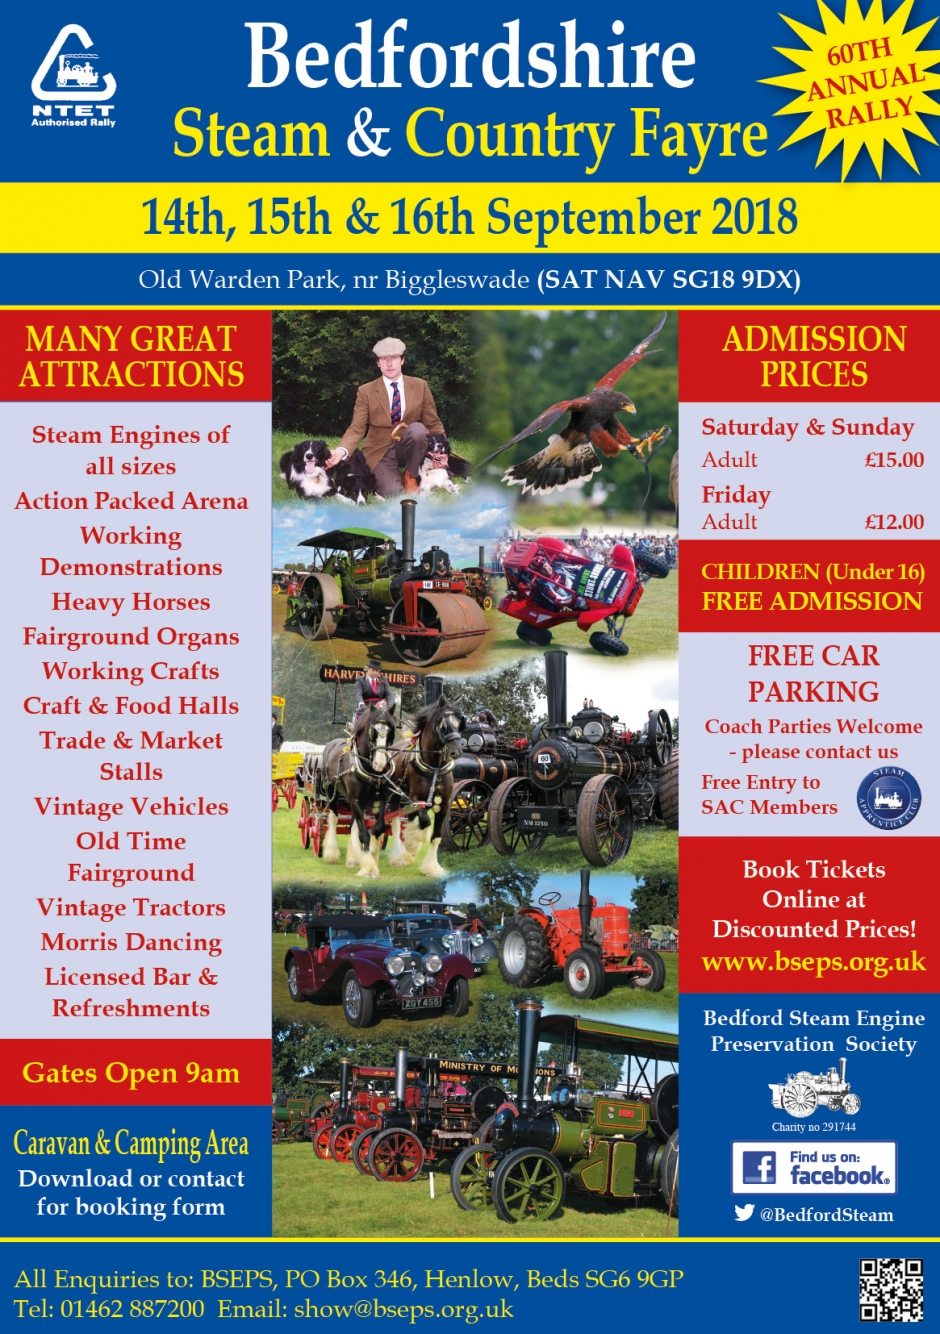 Bedfordshire Steam & Country Fayre - 14th - 16th September